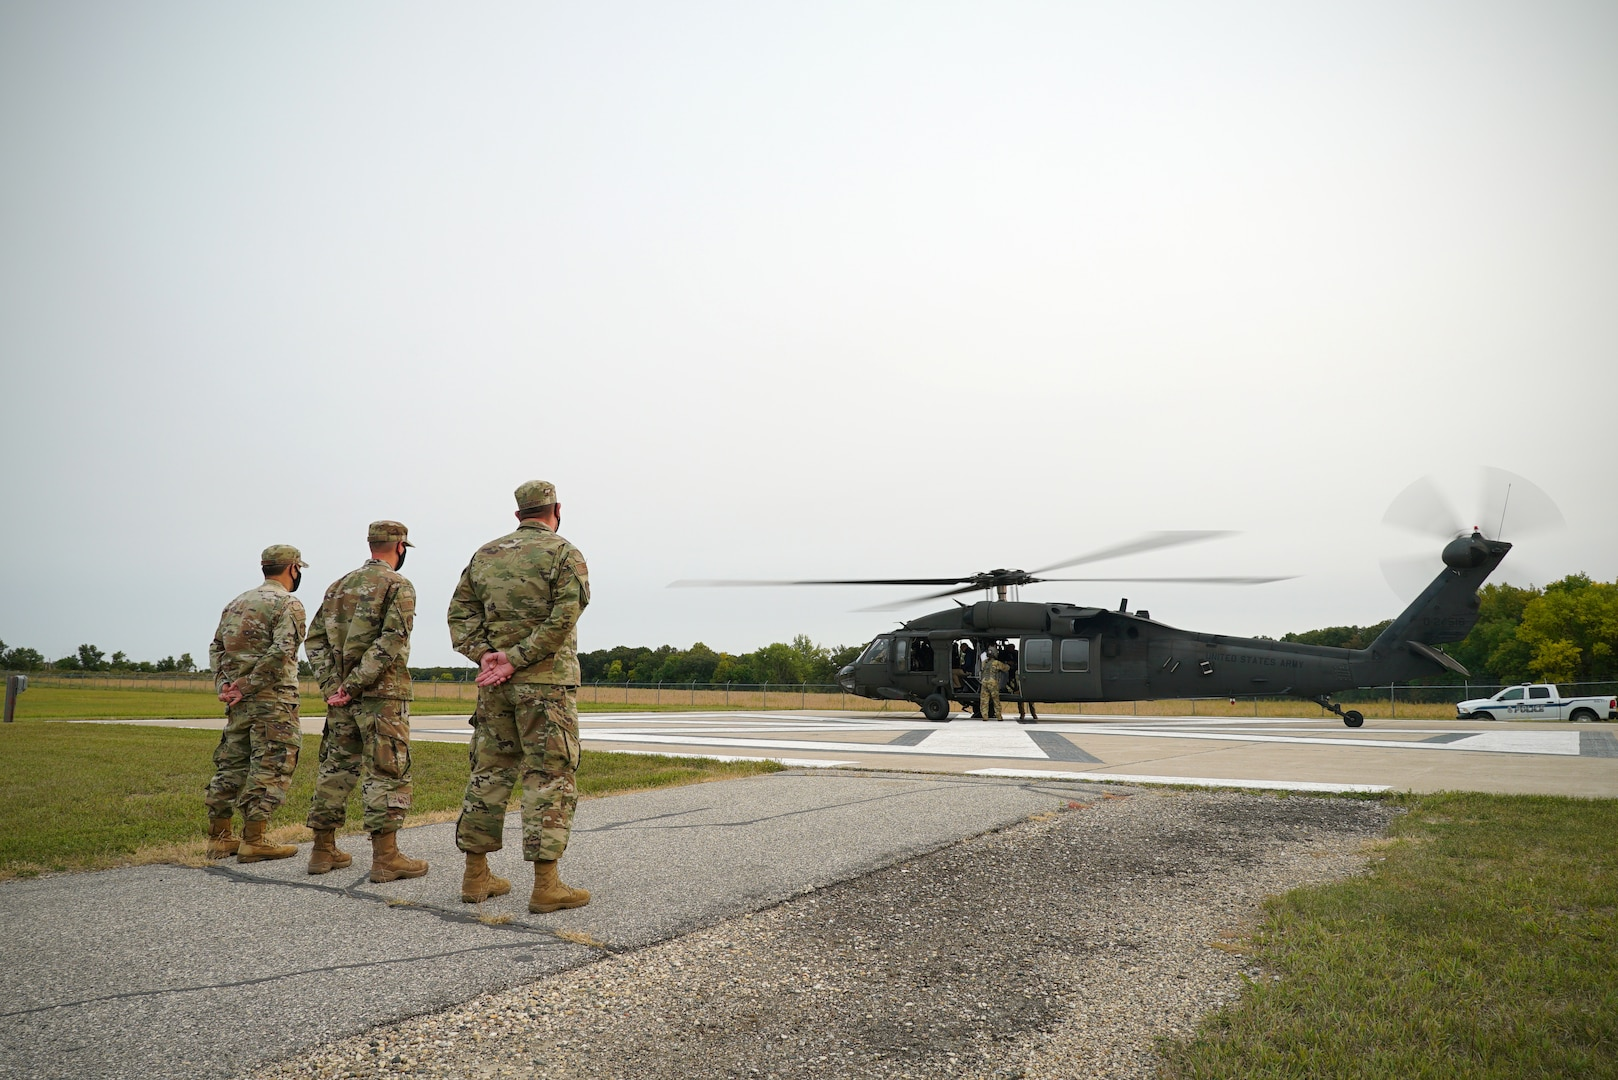 Three men in military uniform stand at parade rest on the left-hand side of the screen, awaiting the departure of a UH-60 Black Hawk seen on the right-hand of the screen.